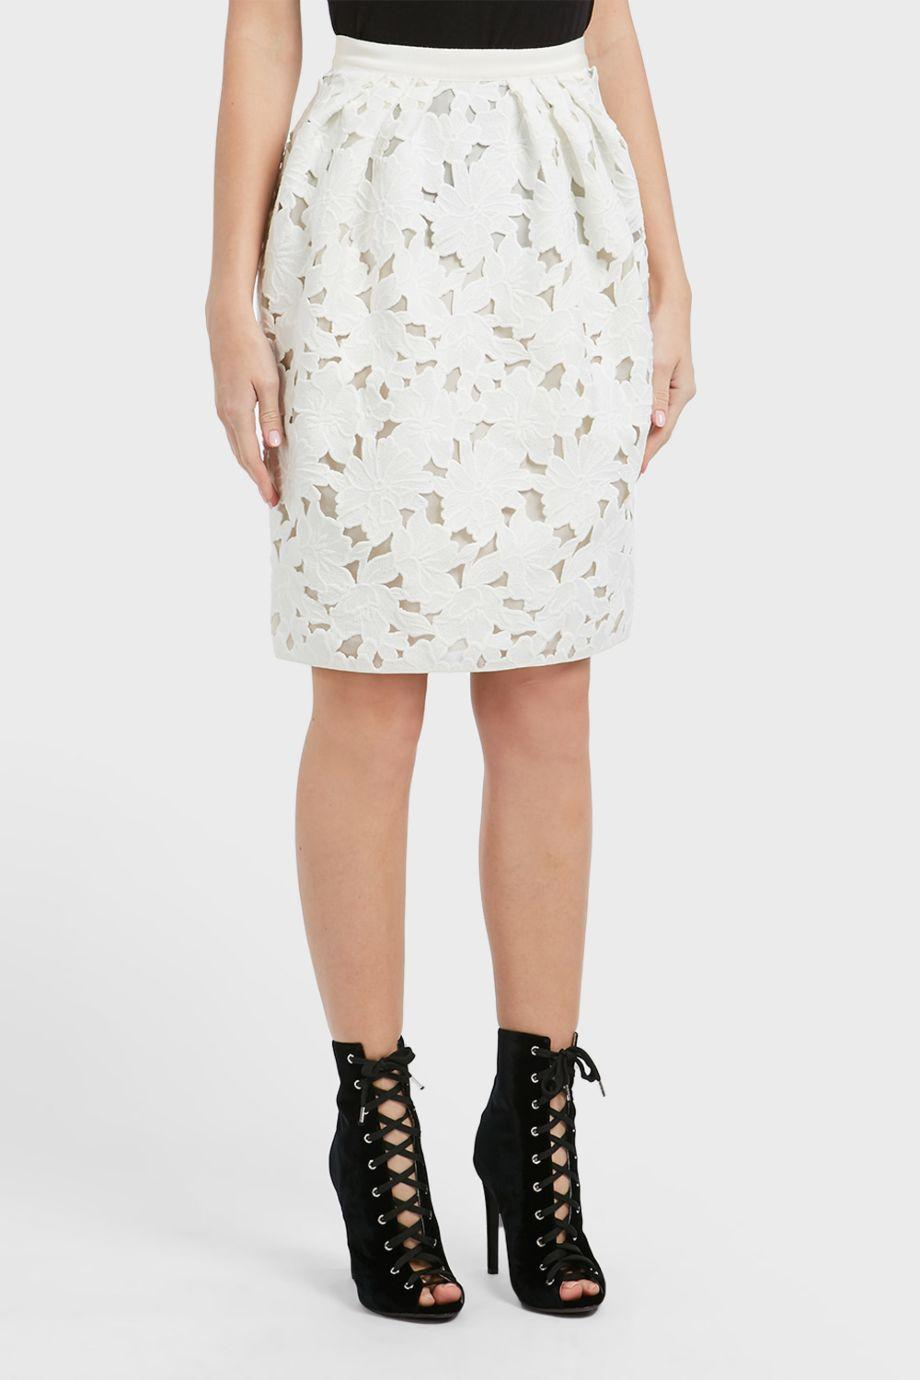 Giambattista Valli Floral MacramÉ-lace Pencil Skirt In White